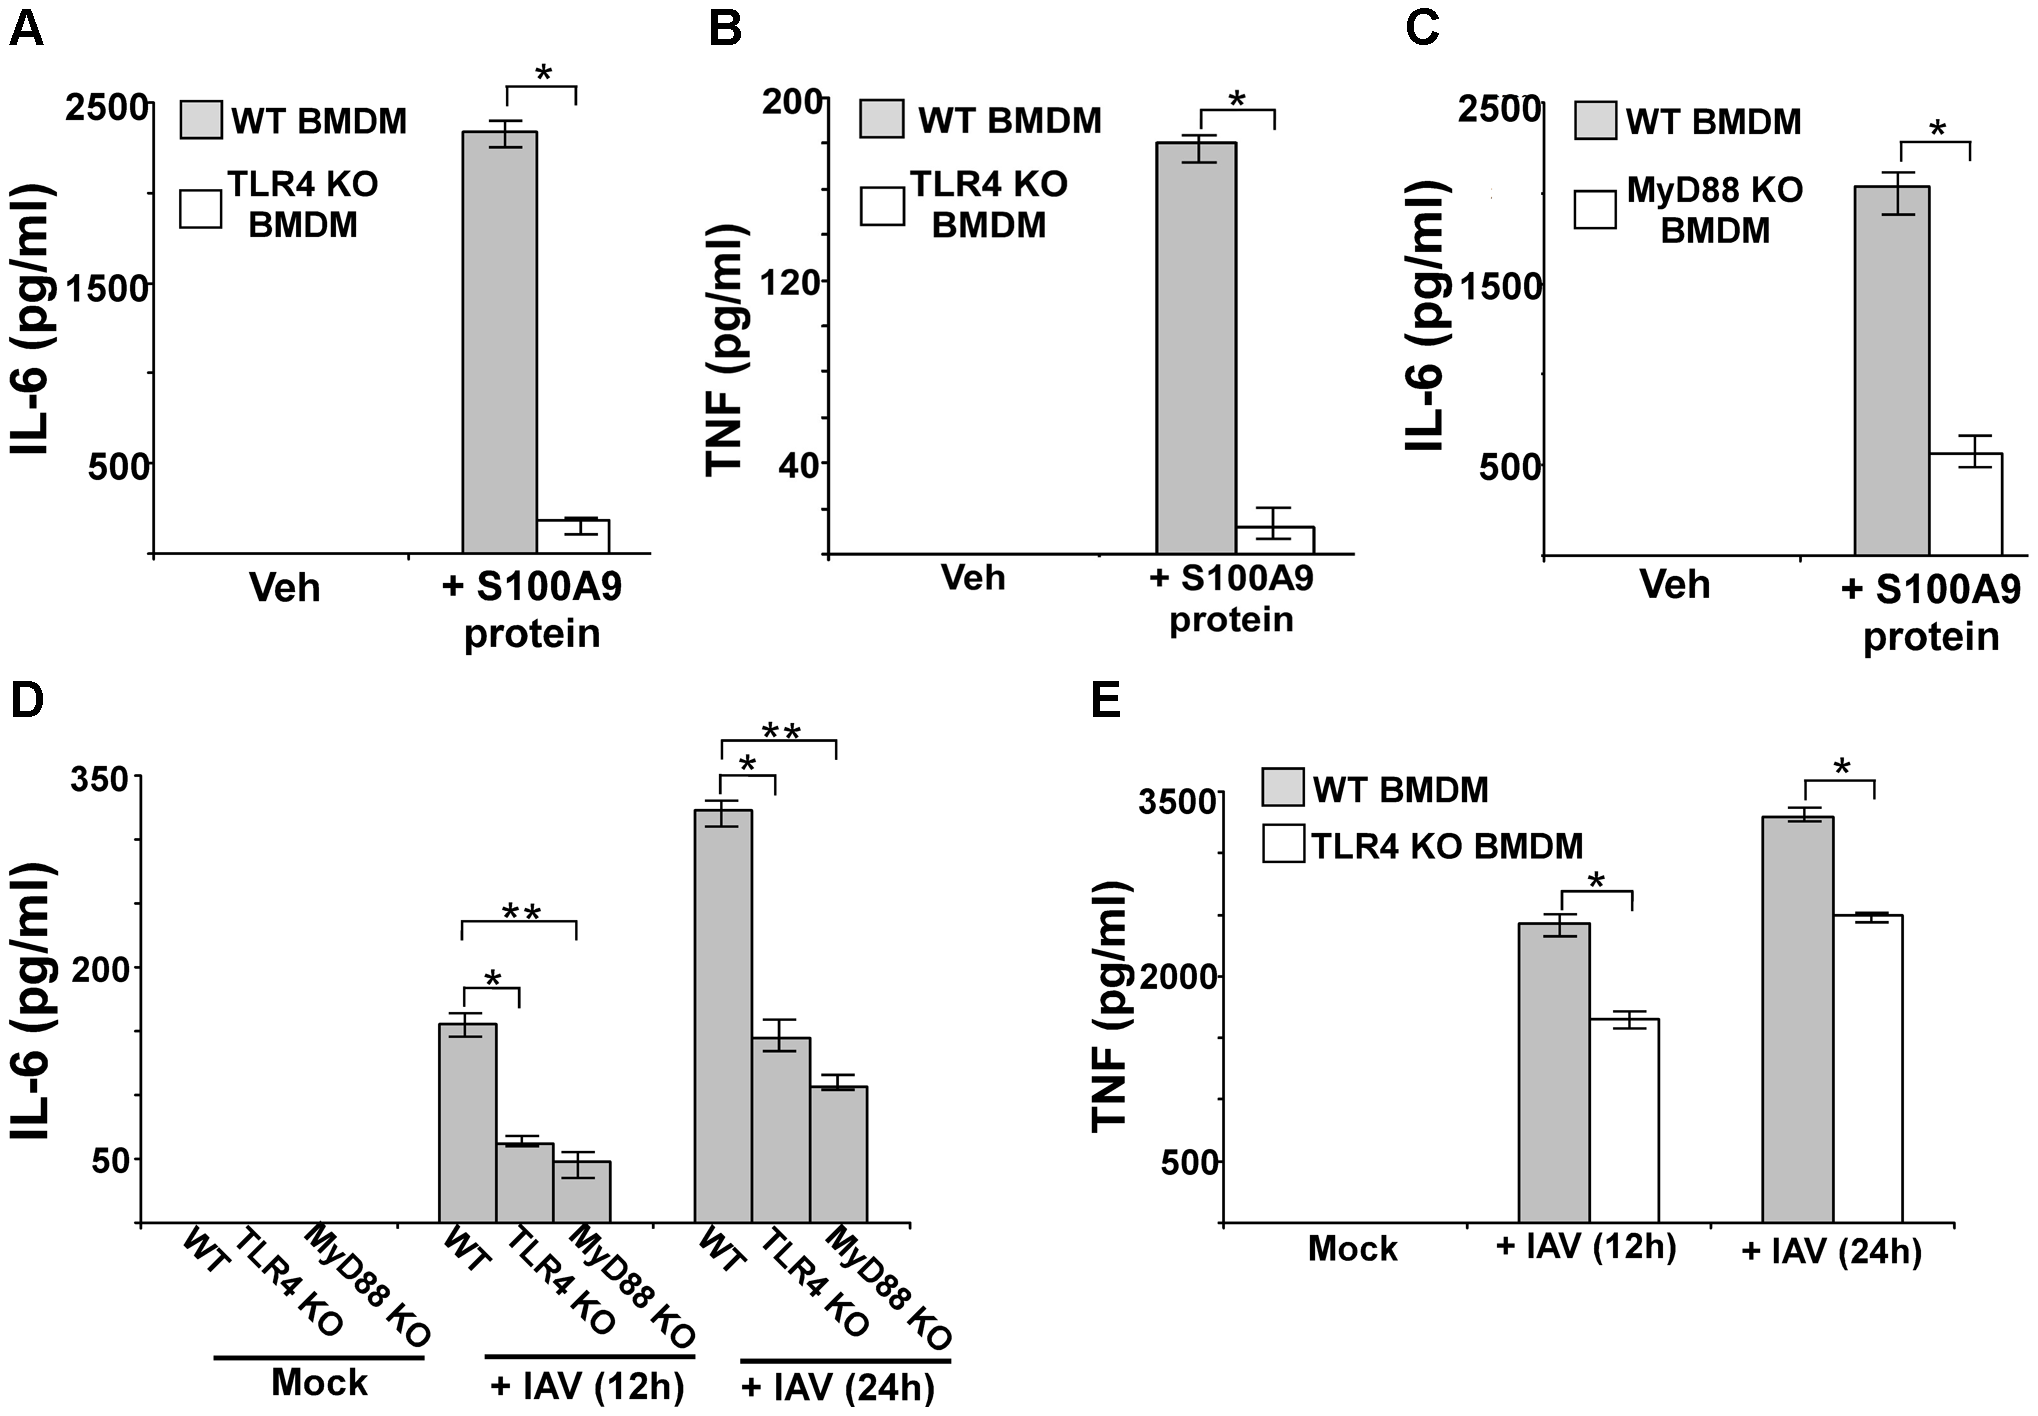 S100A9 activates TLR4/MyD88 pathway and activation of TLR4/MyD88 pathway is essential for IAV-induced pro-inflammatory response.